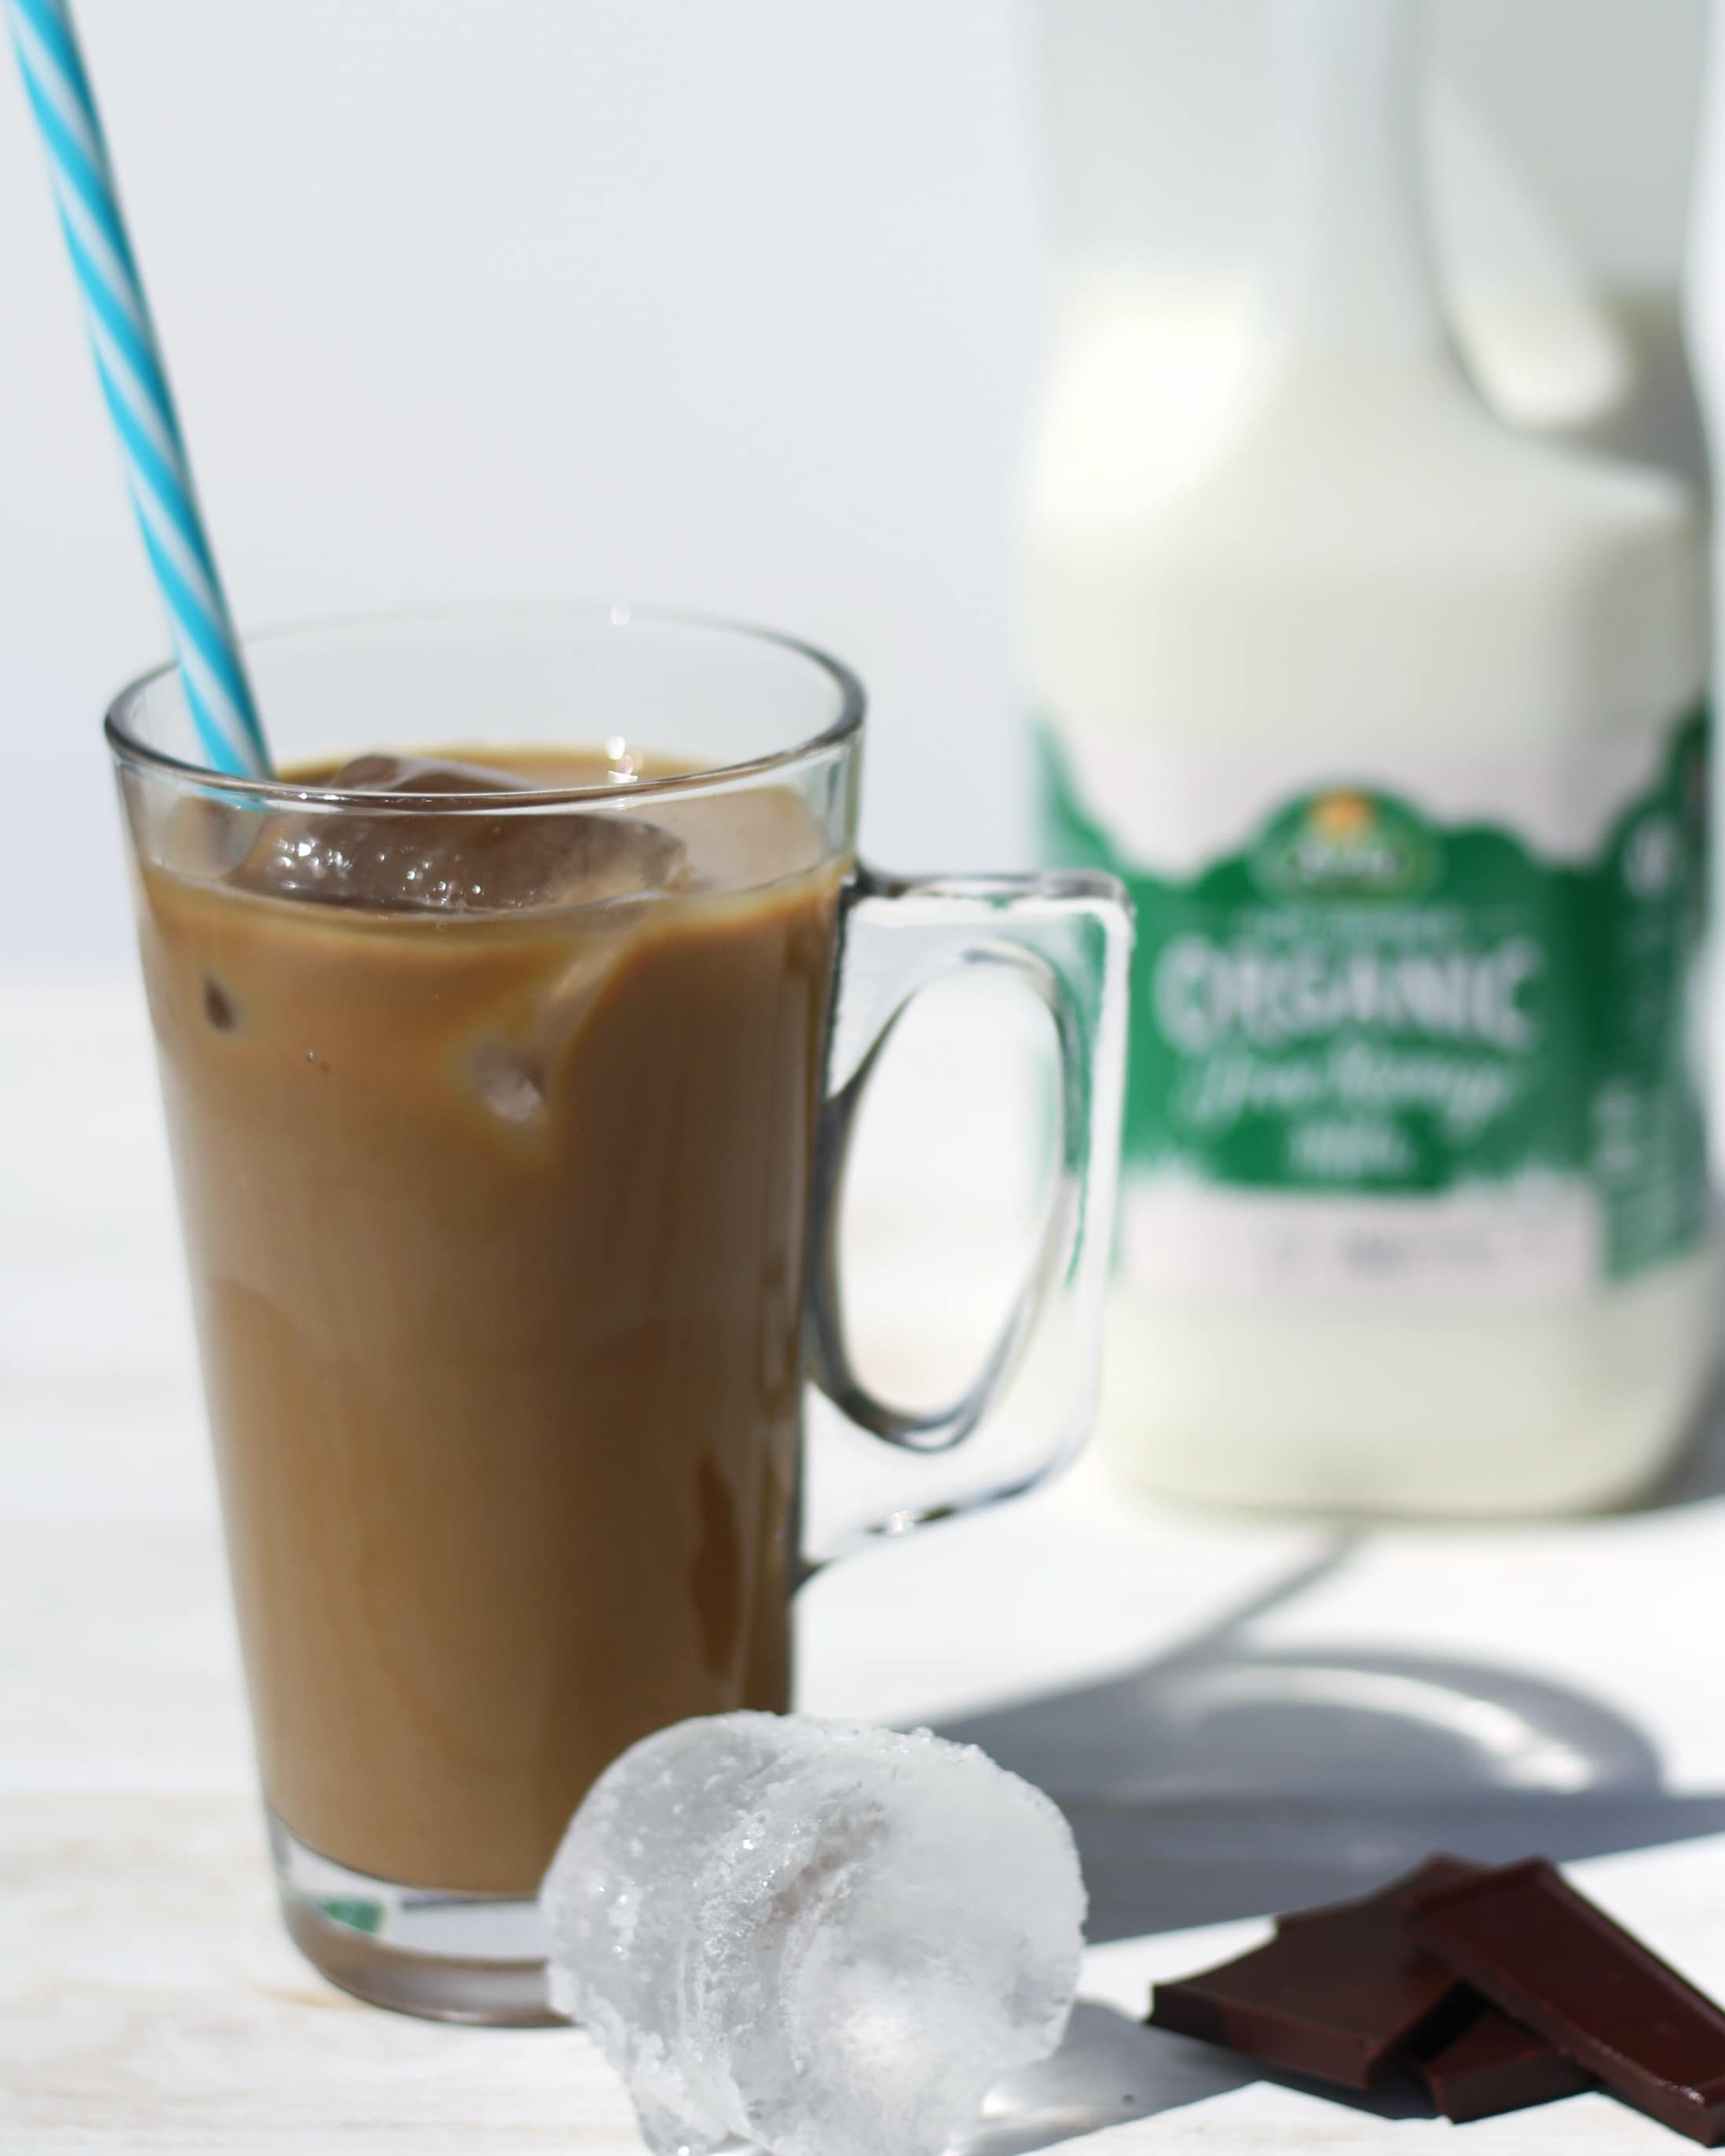 Iced coffee with Arla organic milk